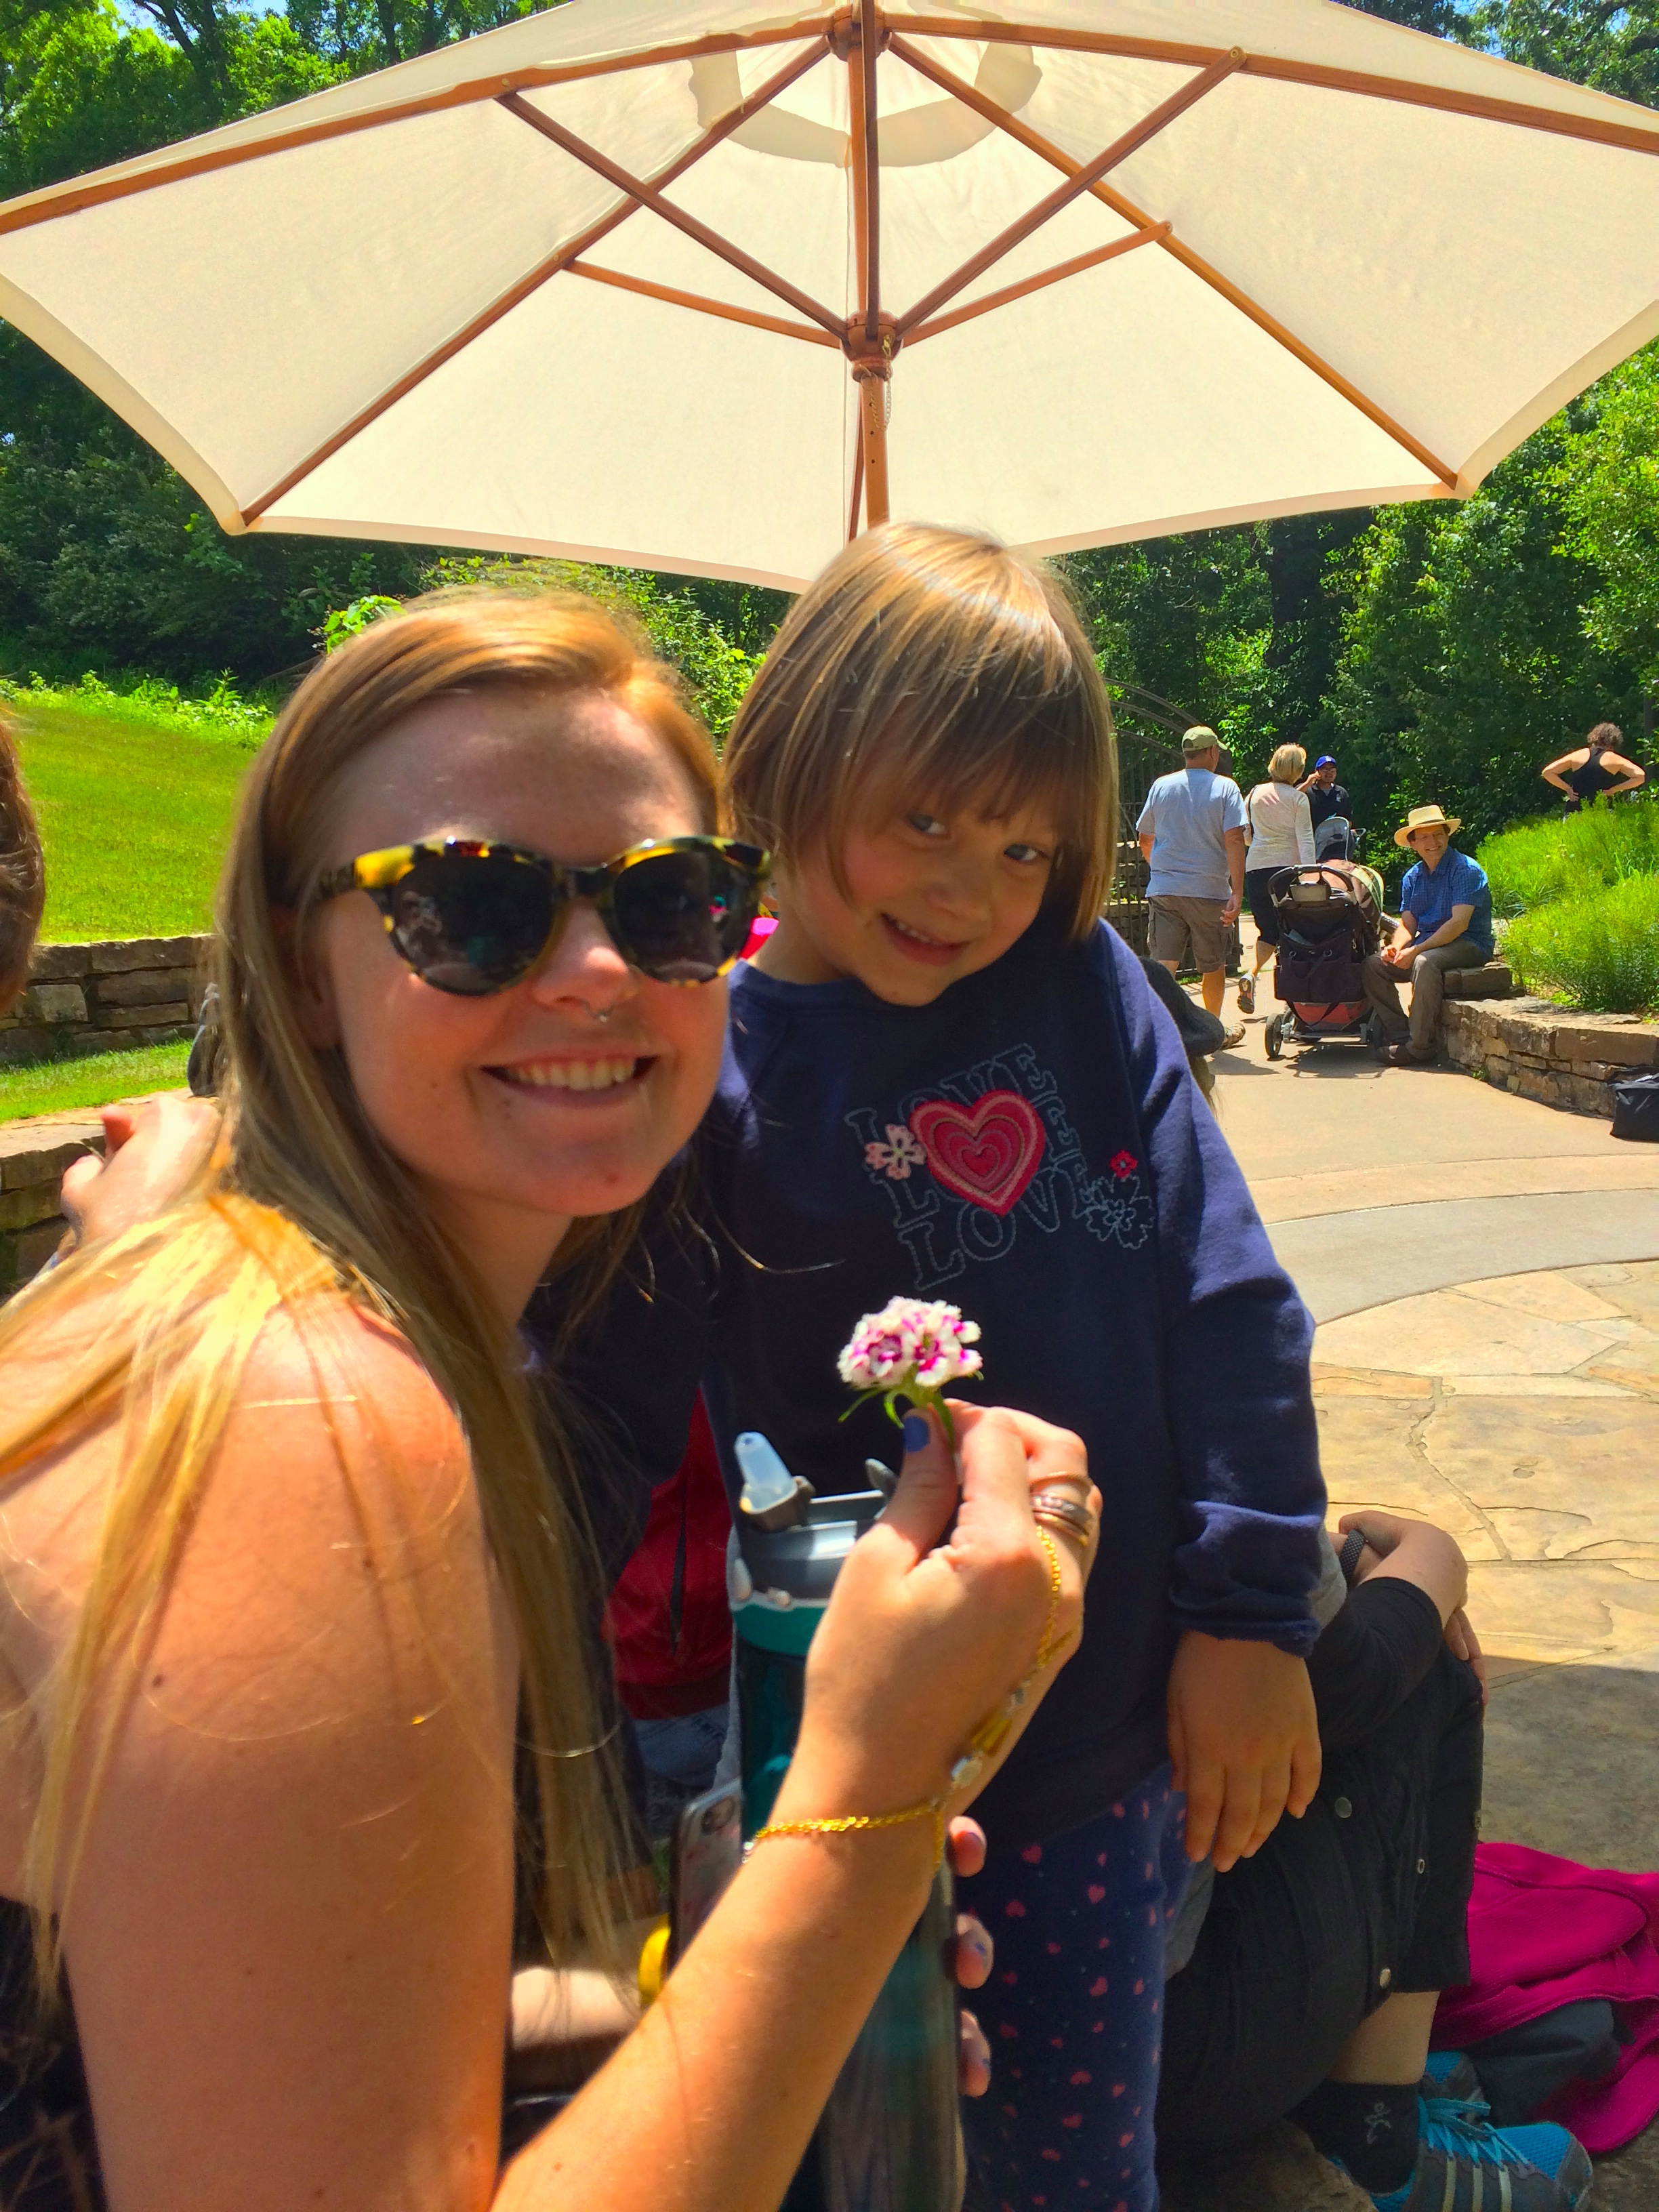 The sweet little lady who we met in Fayetteville, AR gifted Katie and Noah with lovely wildflowers.